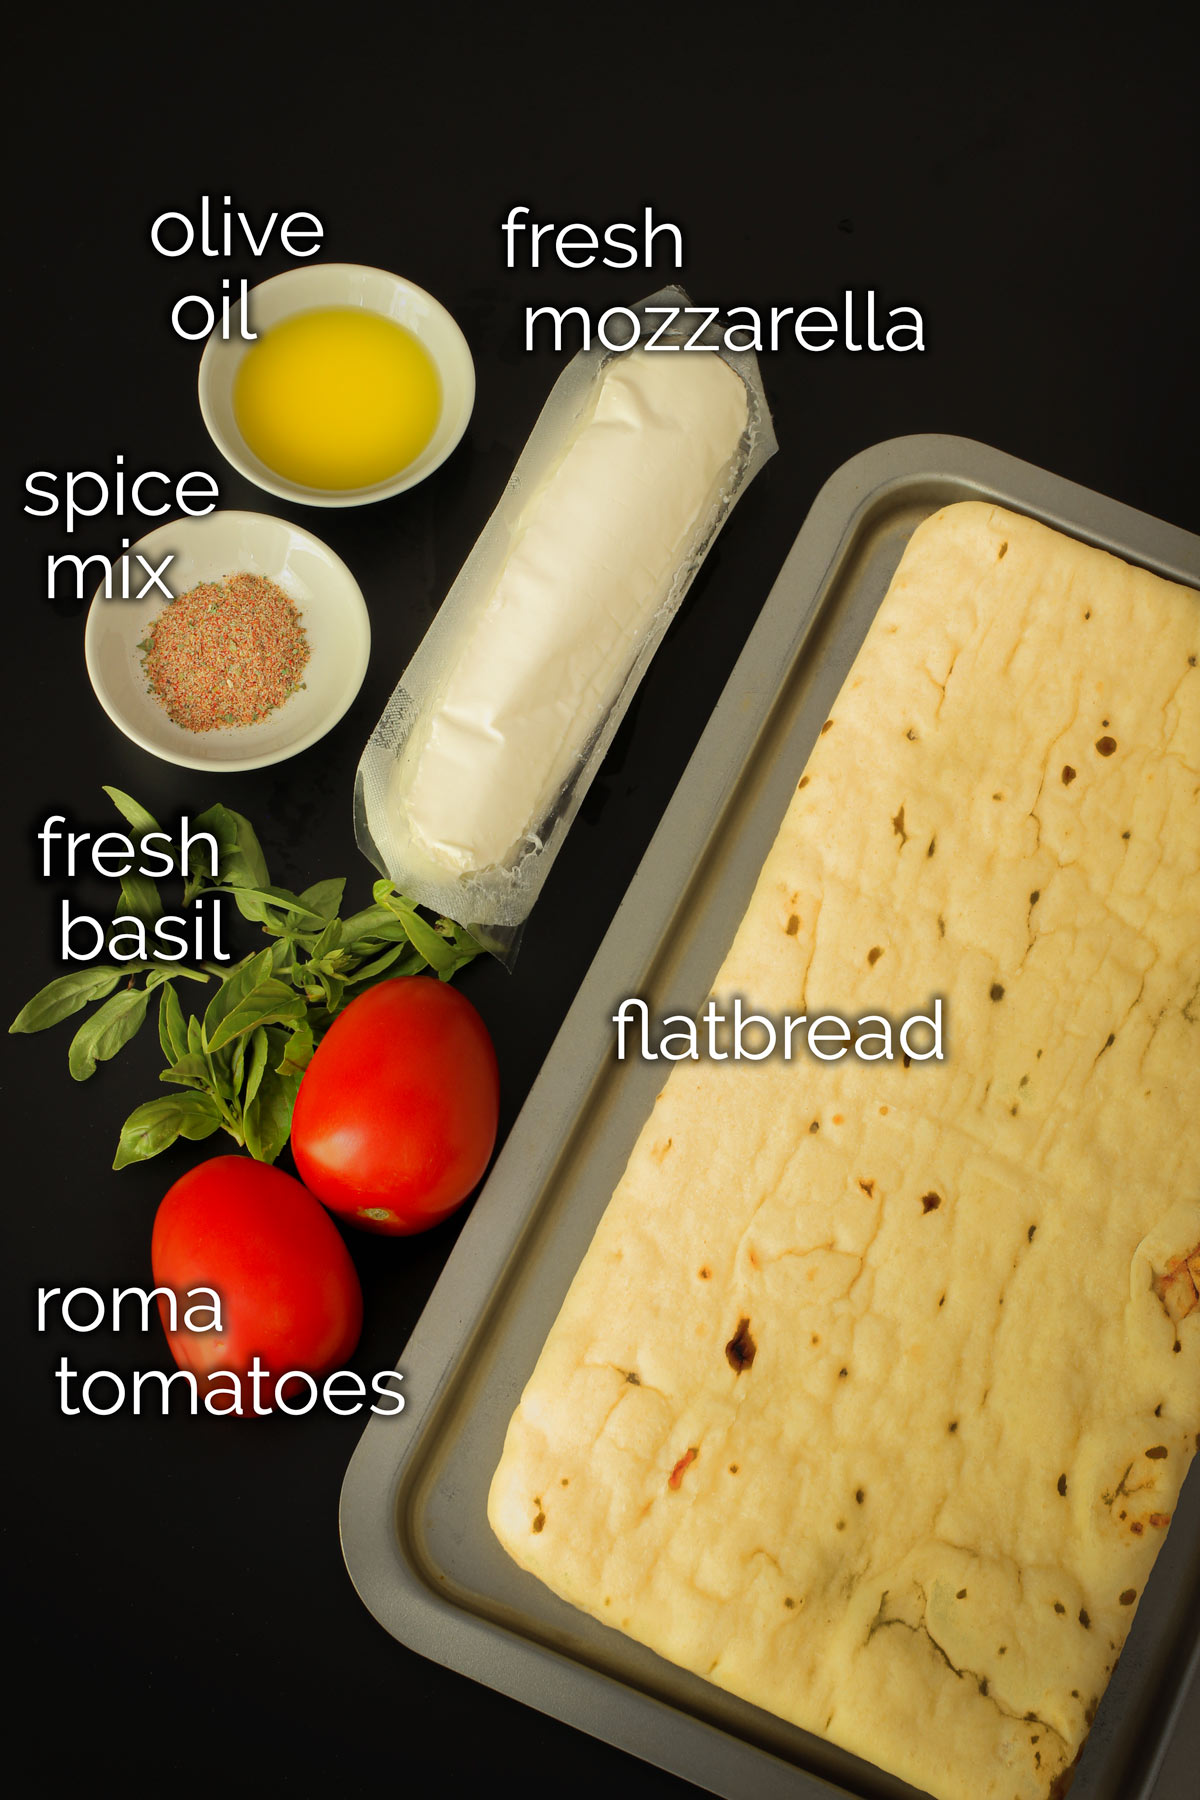 ingredients for margherita flatbread pizza laid out on black table top.